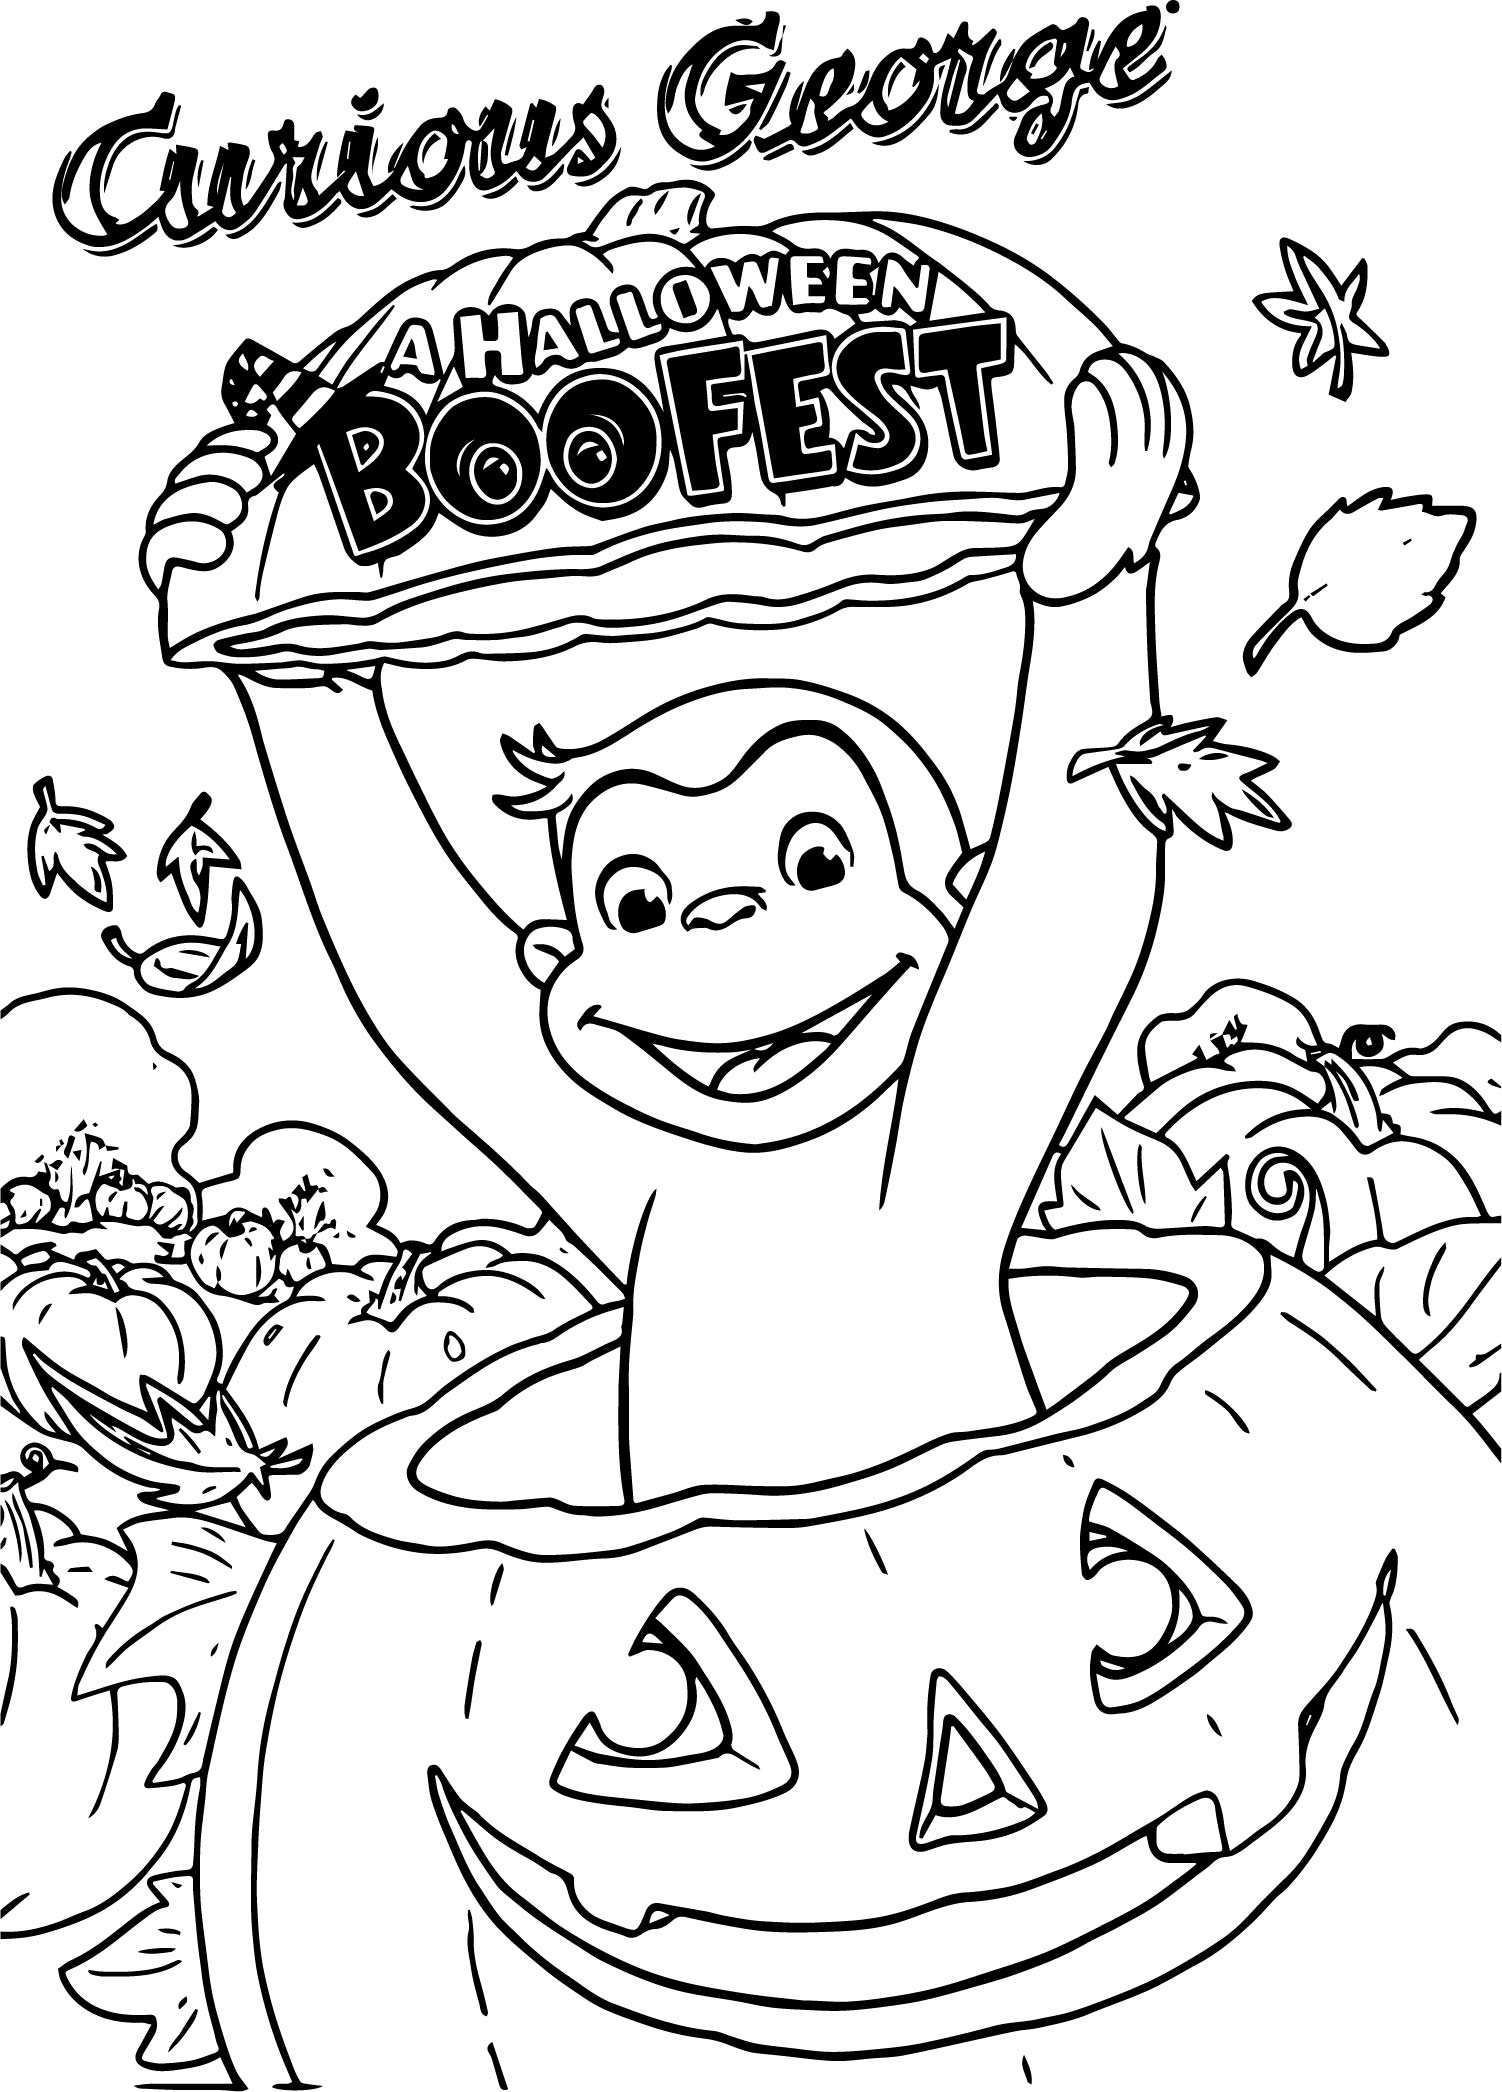 Curious George A Halloween Boofest Coloring Page